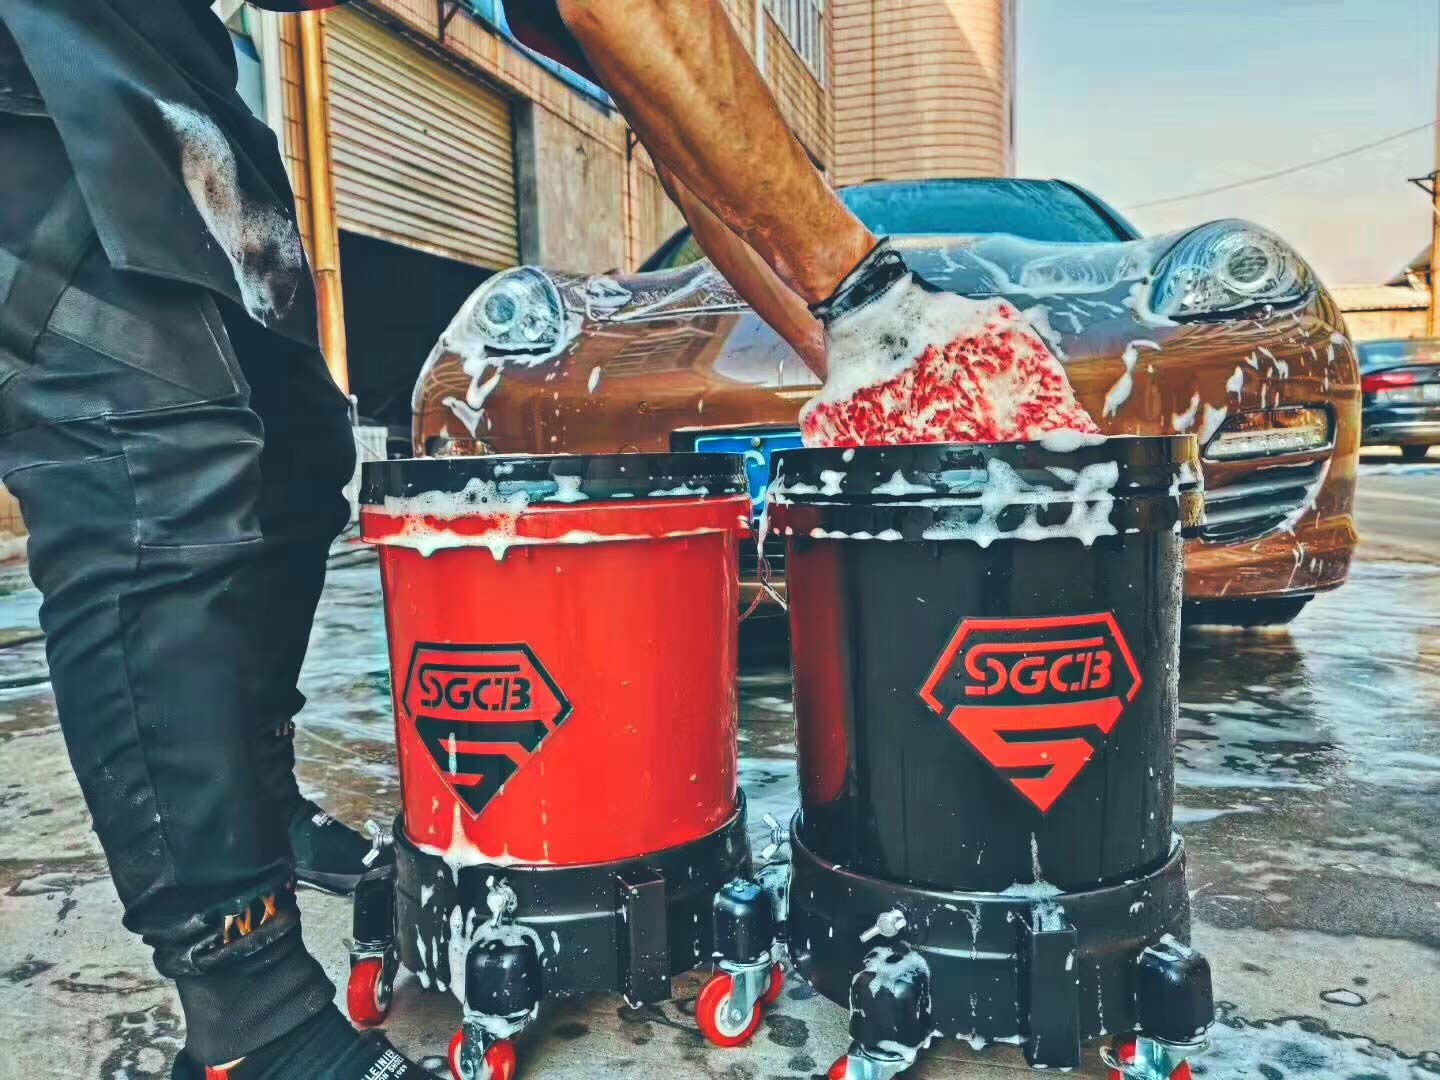 SGCB car wash bucket